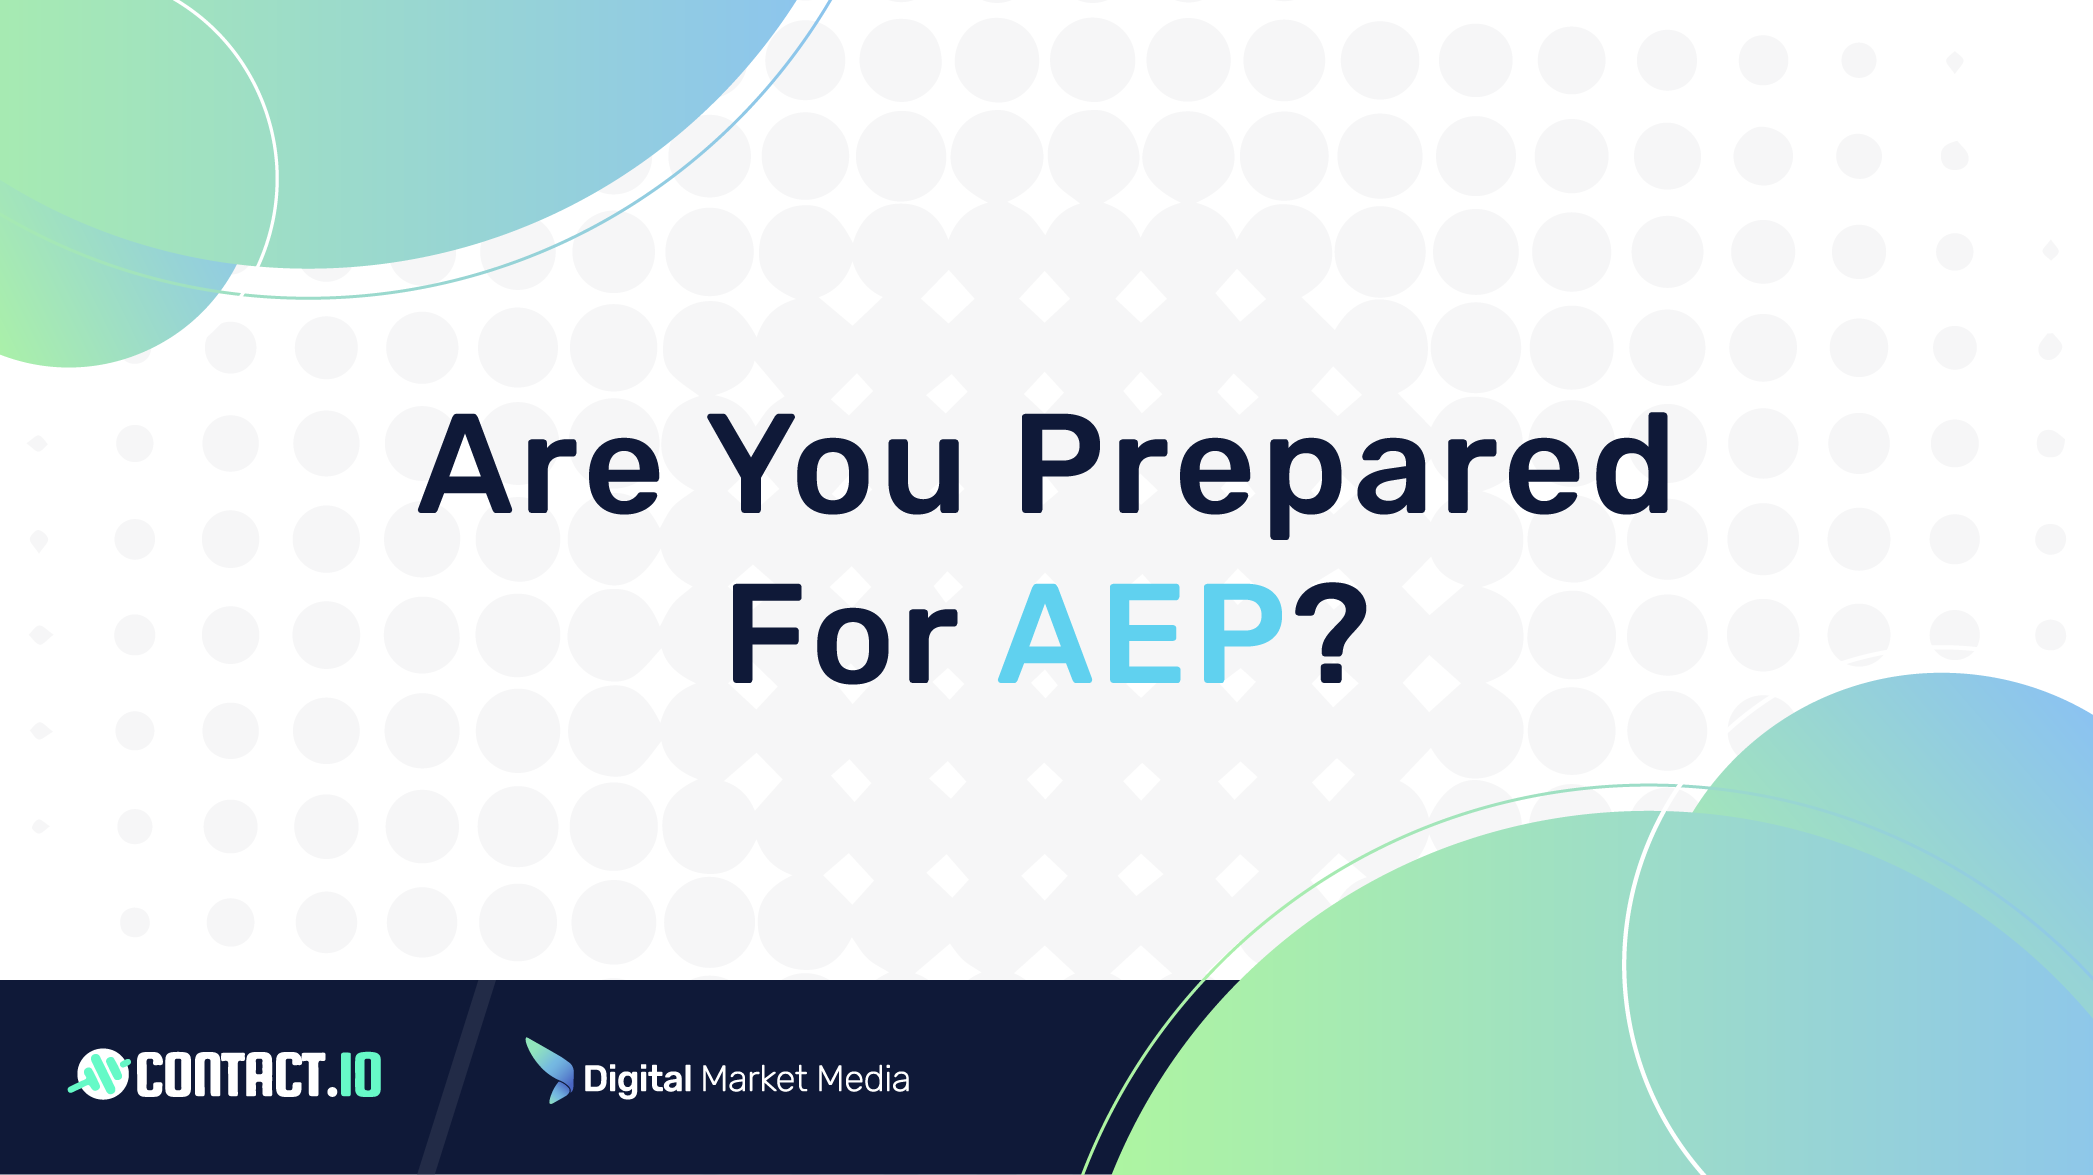 Are You Prepared for AEP?